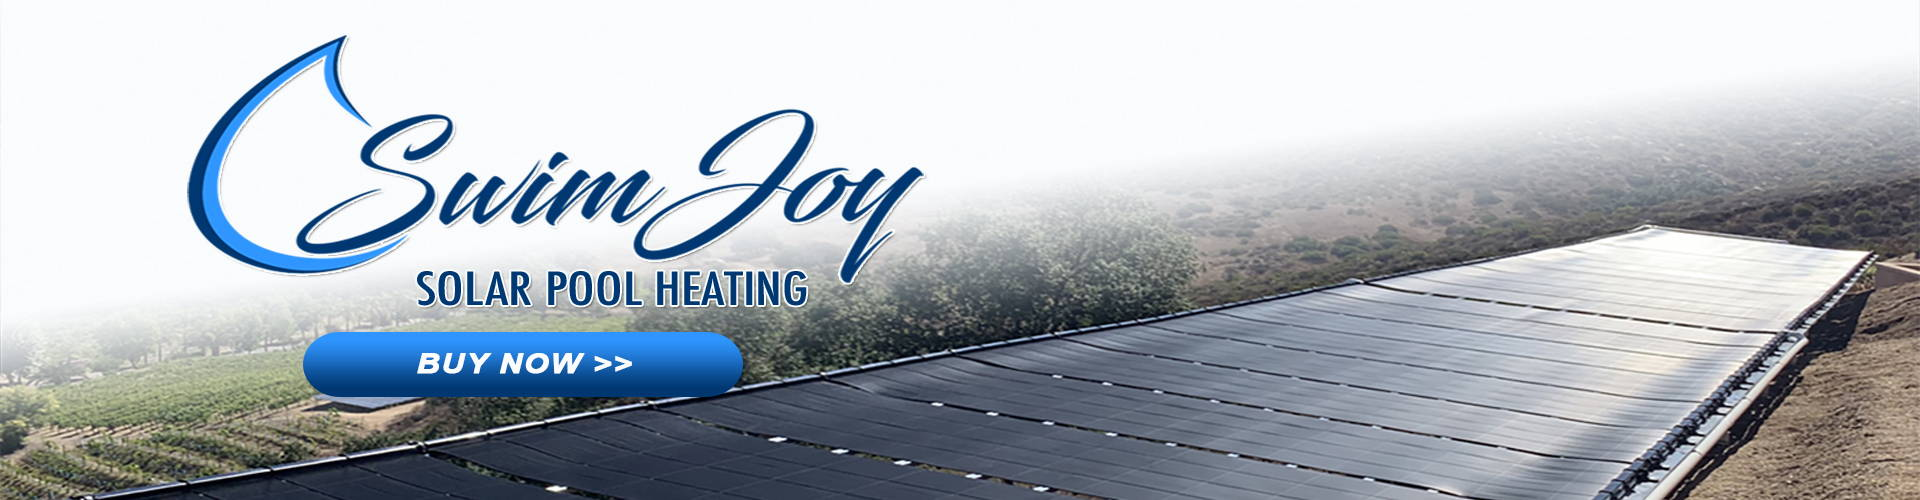 SwimJoy Solar Pool Heating